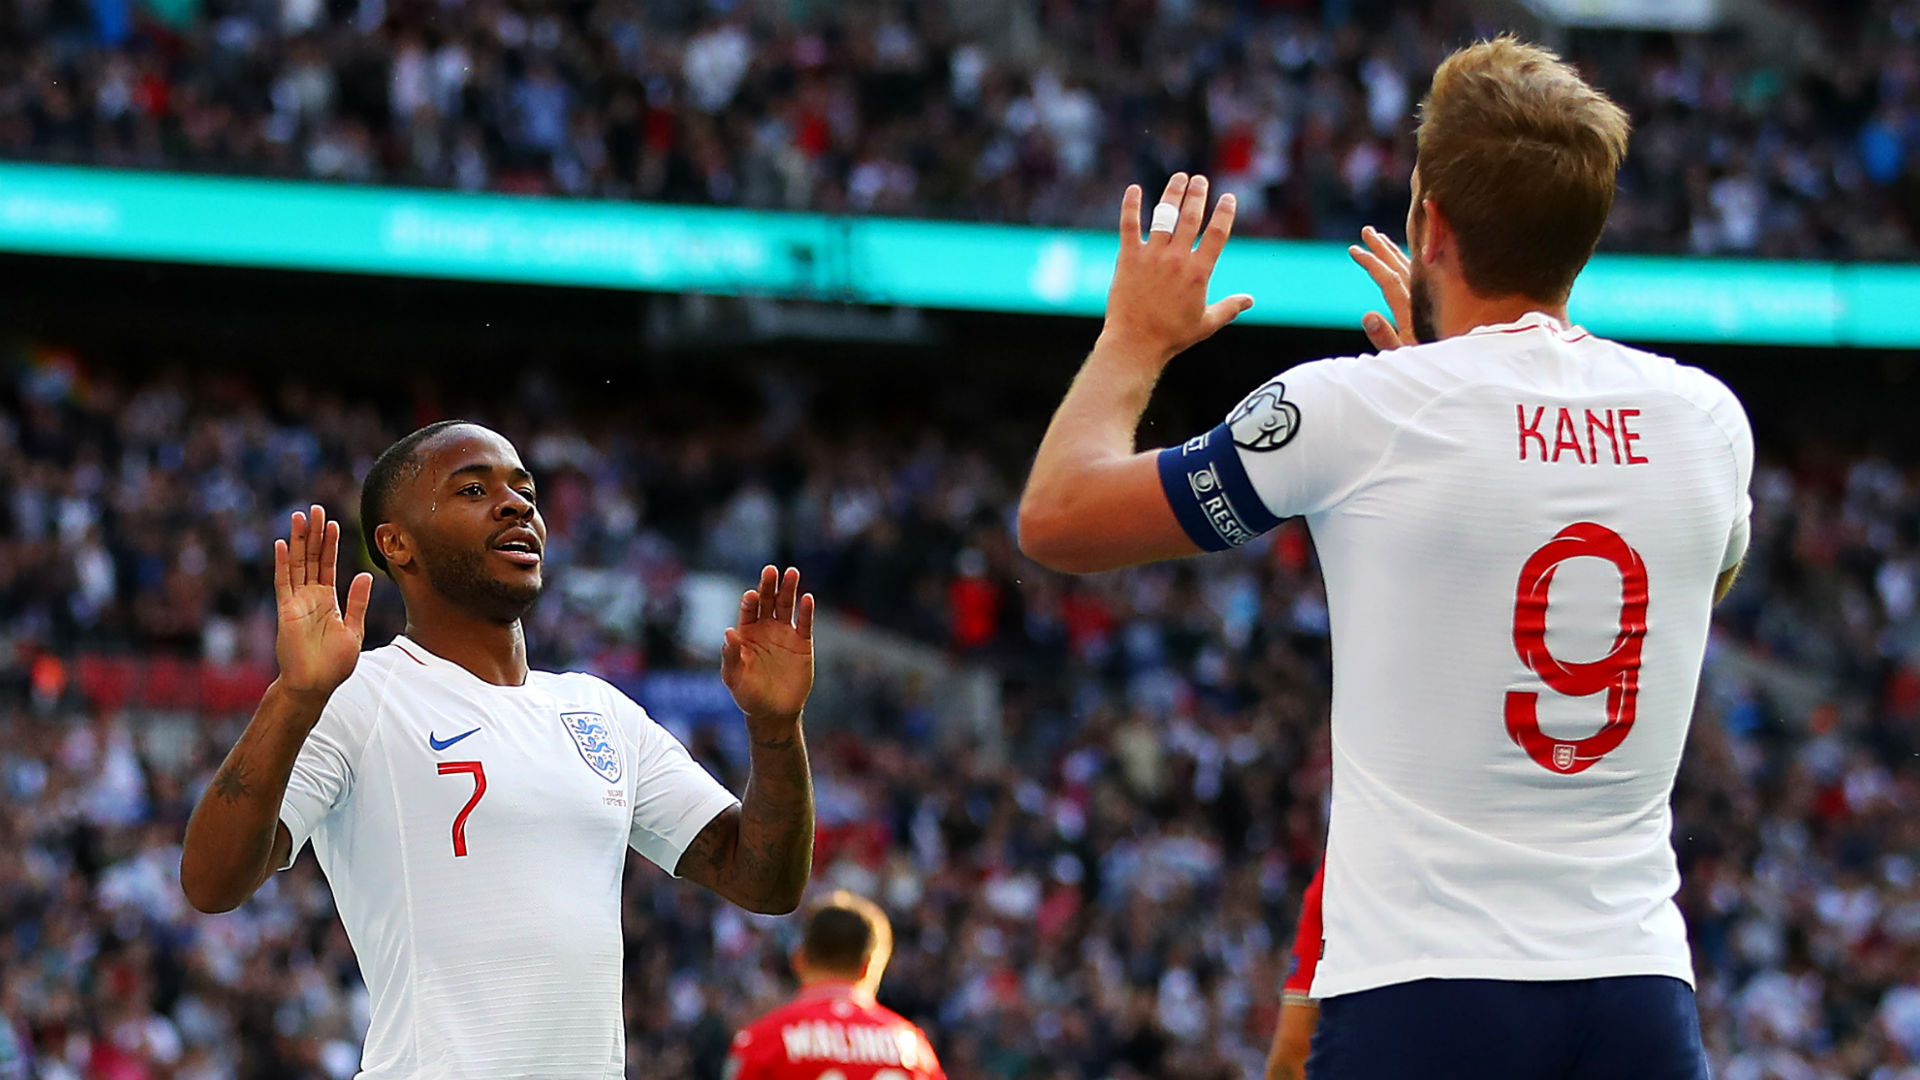 'He's got the ability' - Southgate backs Sterling to become world's best